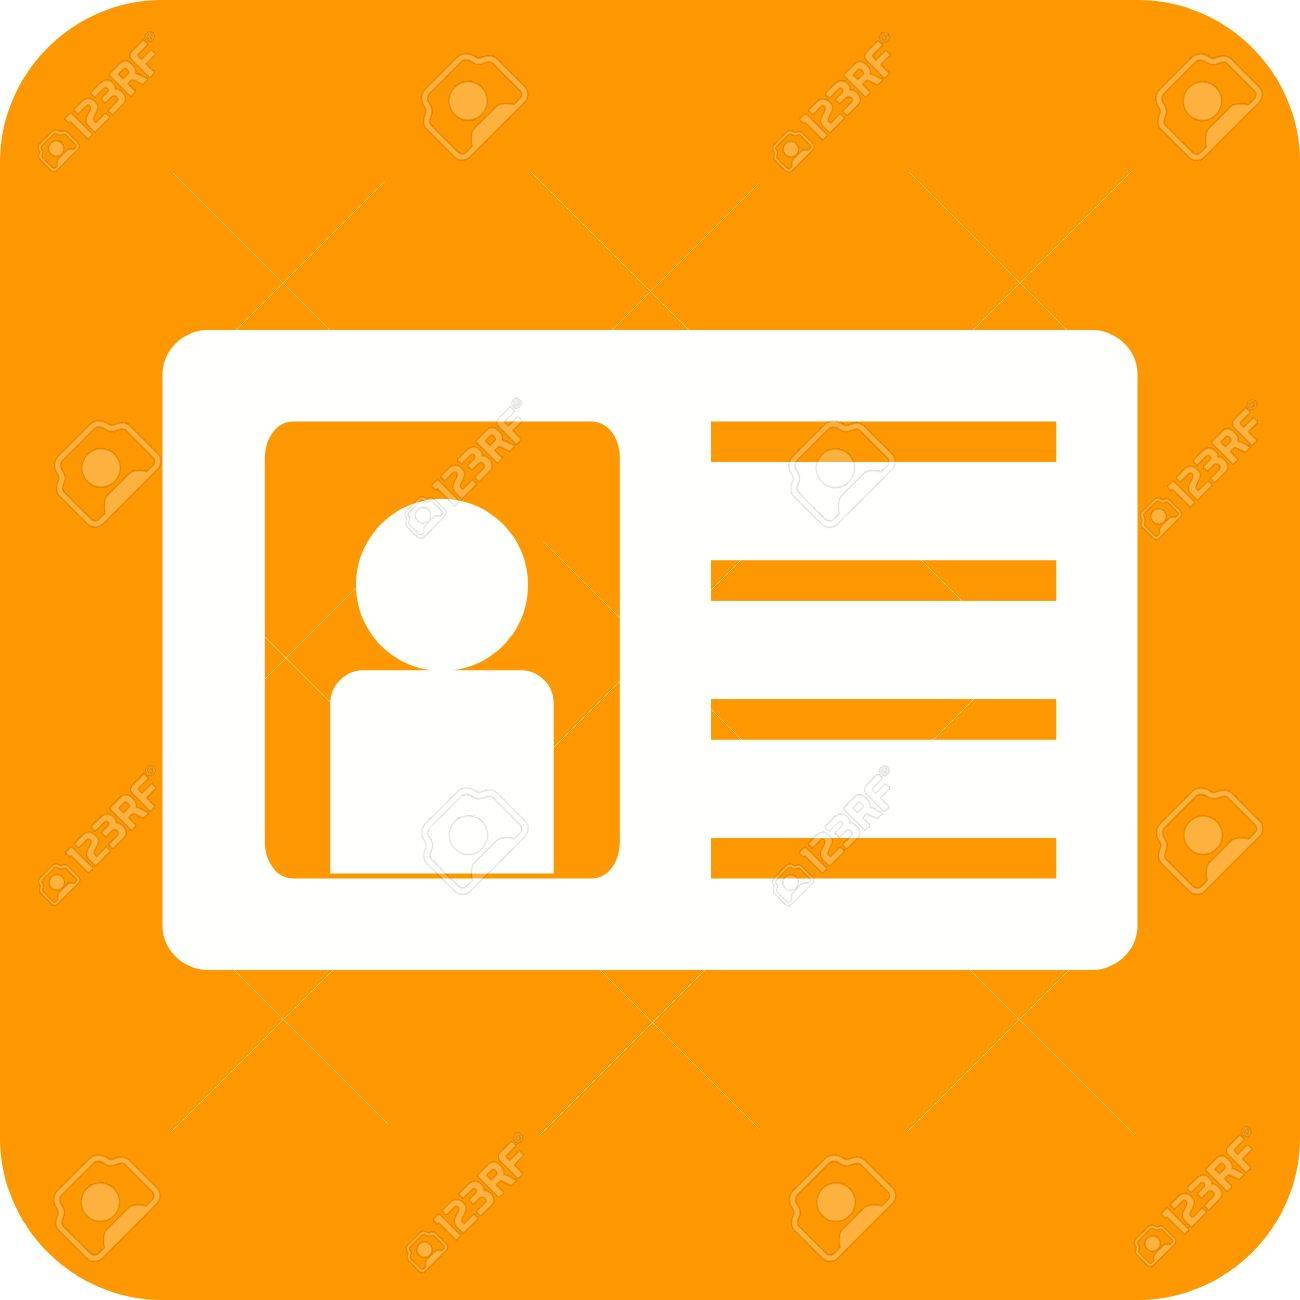 can Illustration Identity Vectors Icon And Be Used Vector 53097522 Image Also Royalty Free Stock Authorization Card Image Cliparts